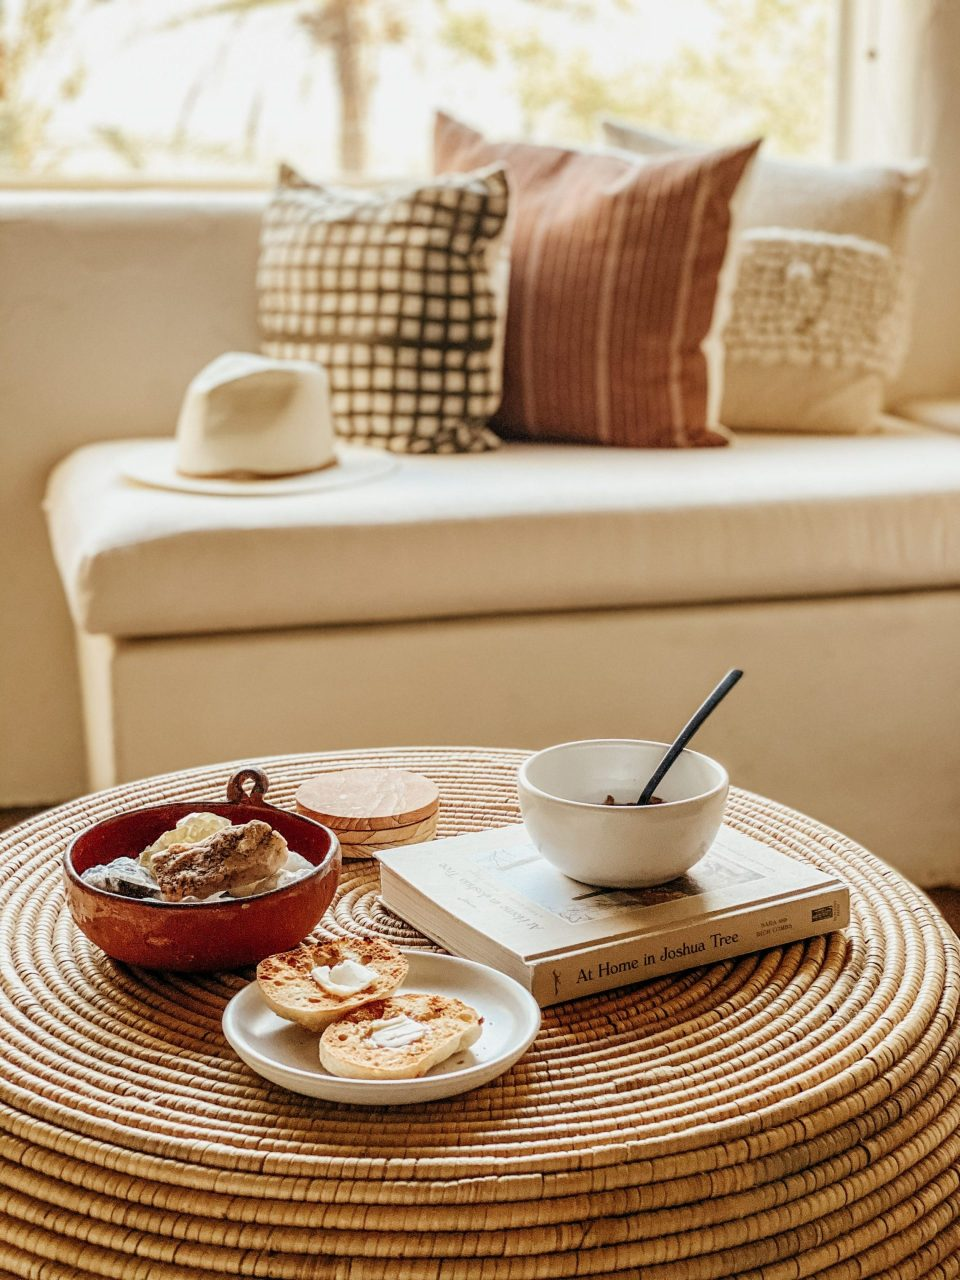 healthy, wholesome breakfast laid out on a wicker ottoman